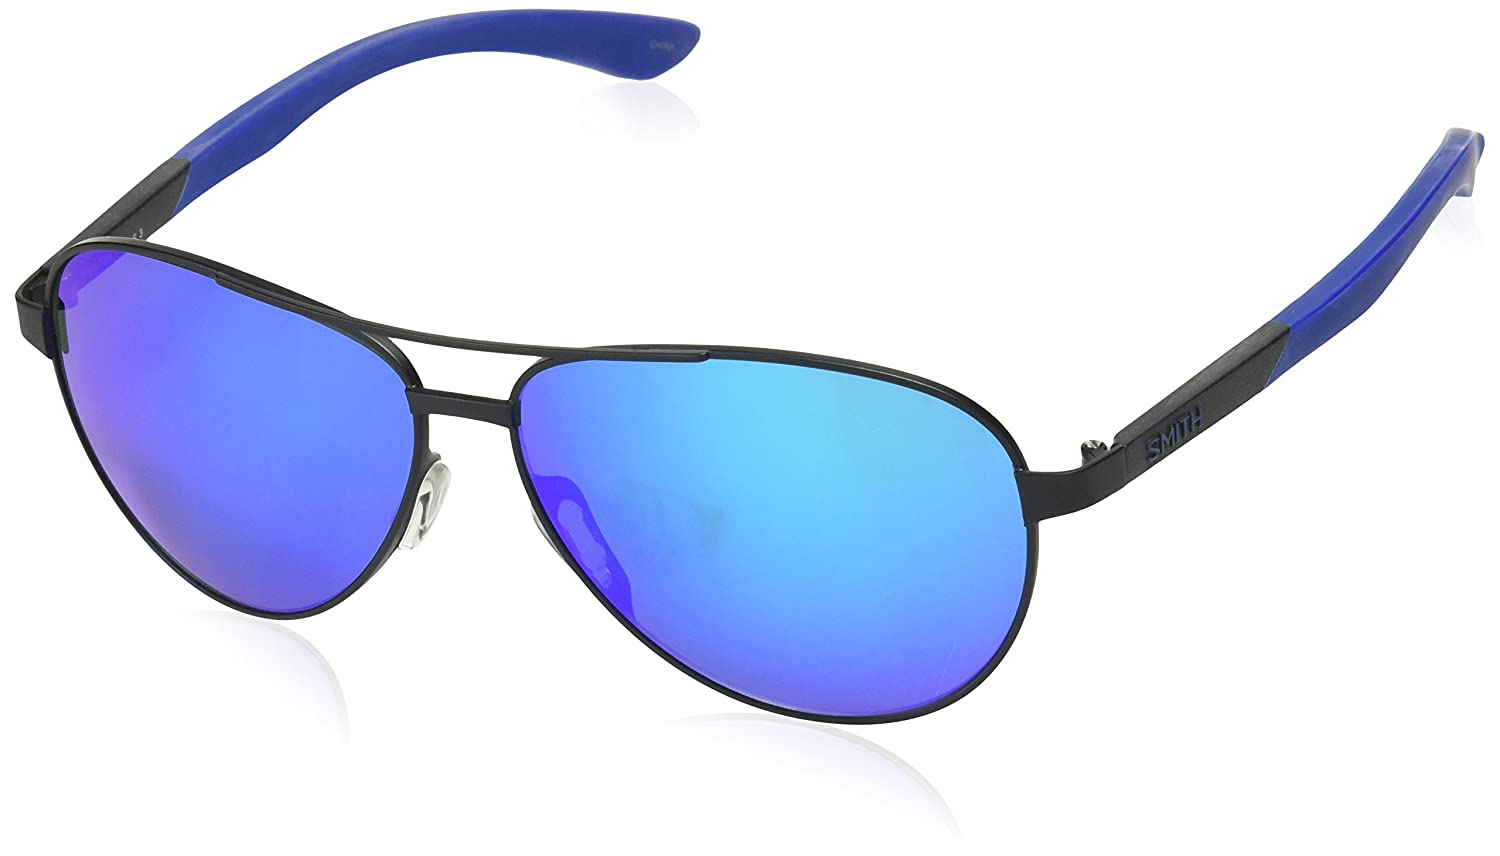 c29c61e4f6d04 Amazon.com  Smith Salute Carbonic Sunglasses